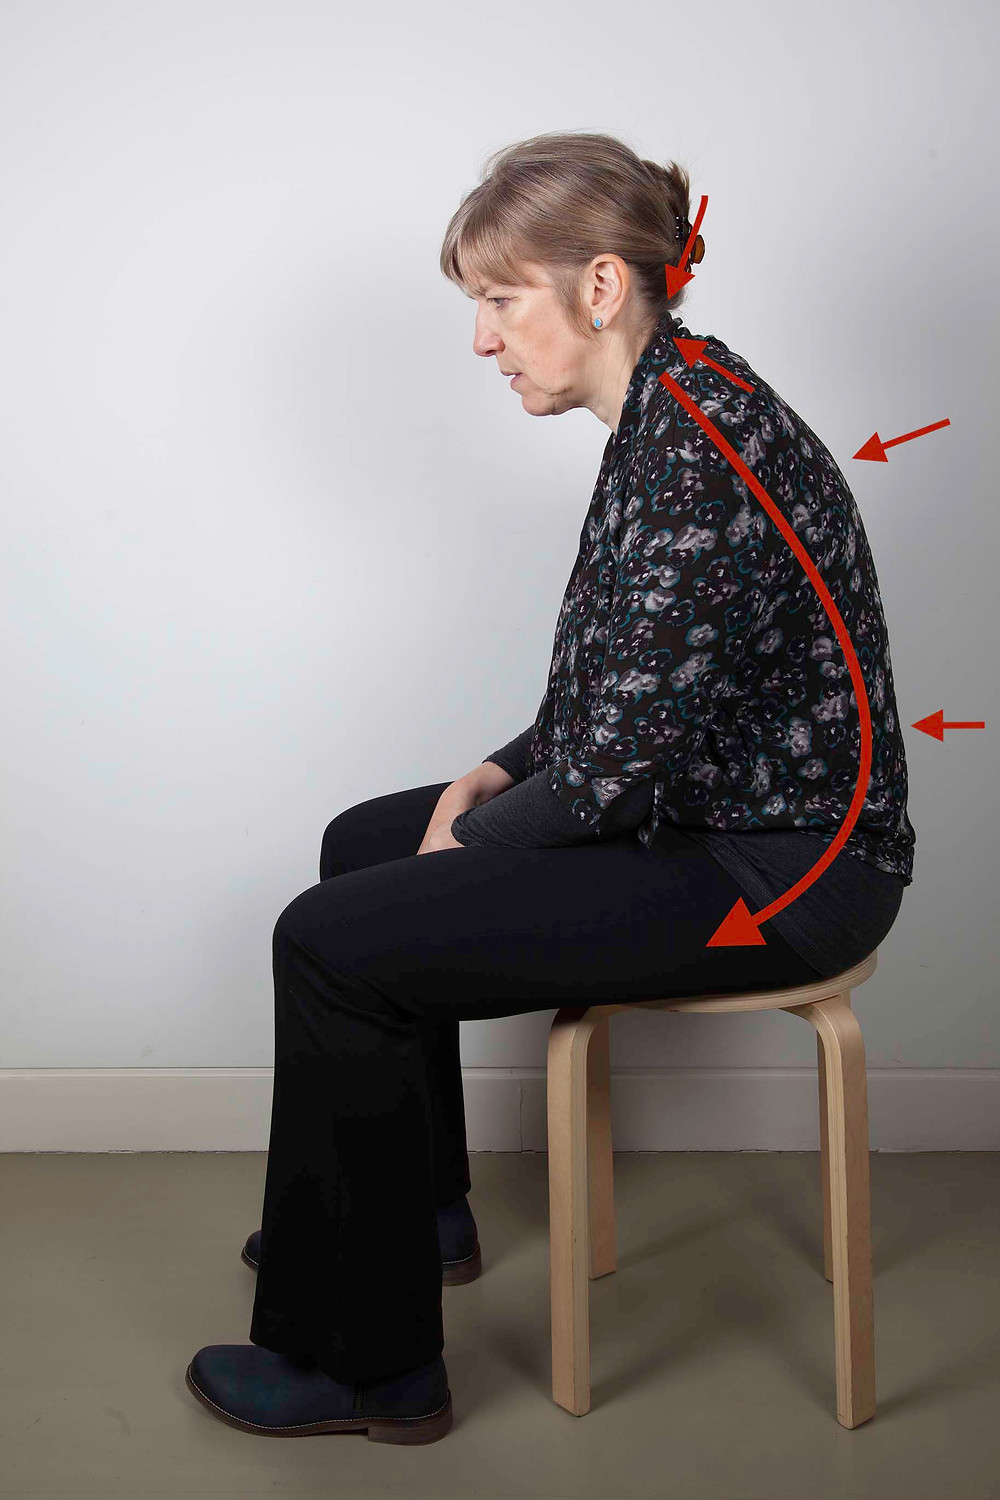 Sitting in a slumped position, weight on base of spine, causing the next to tighten and back to push out and lose natural lumbar curve